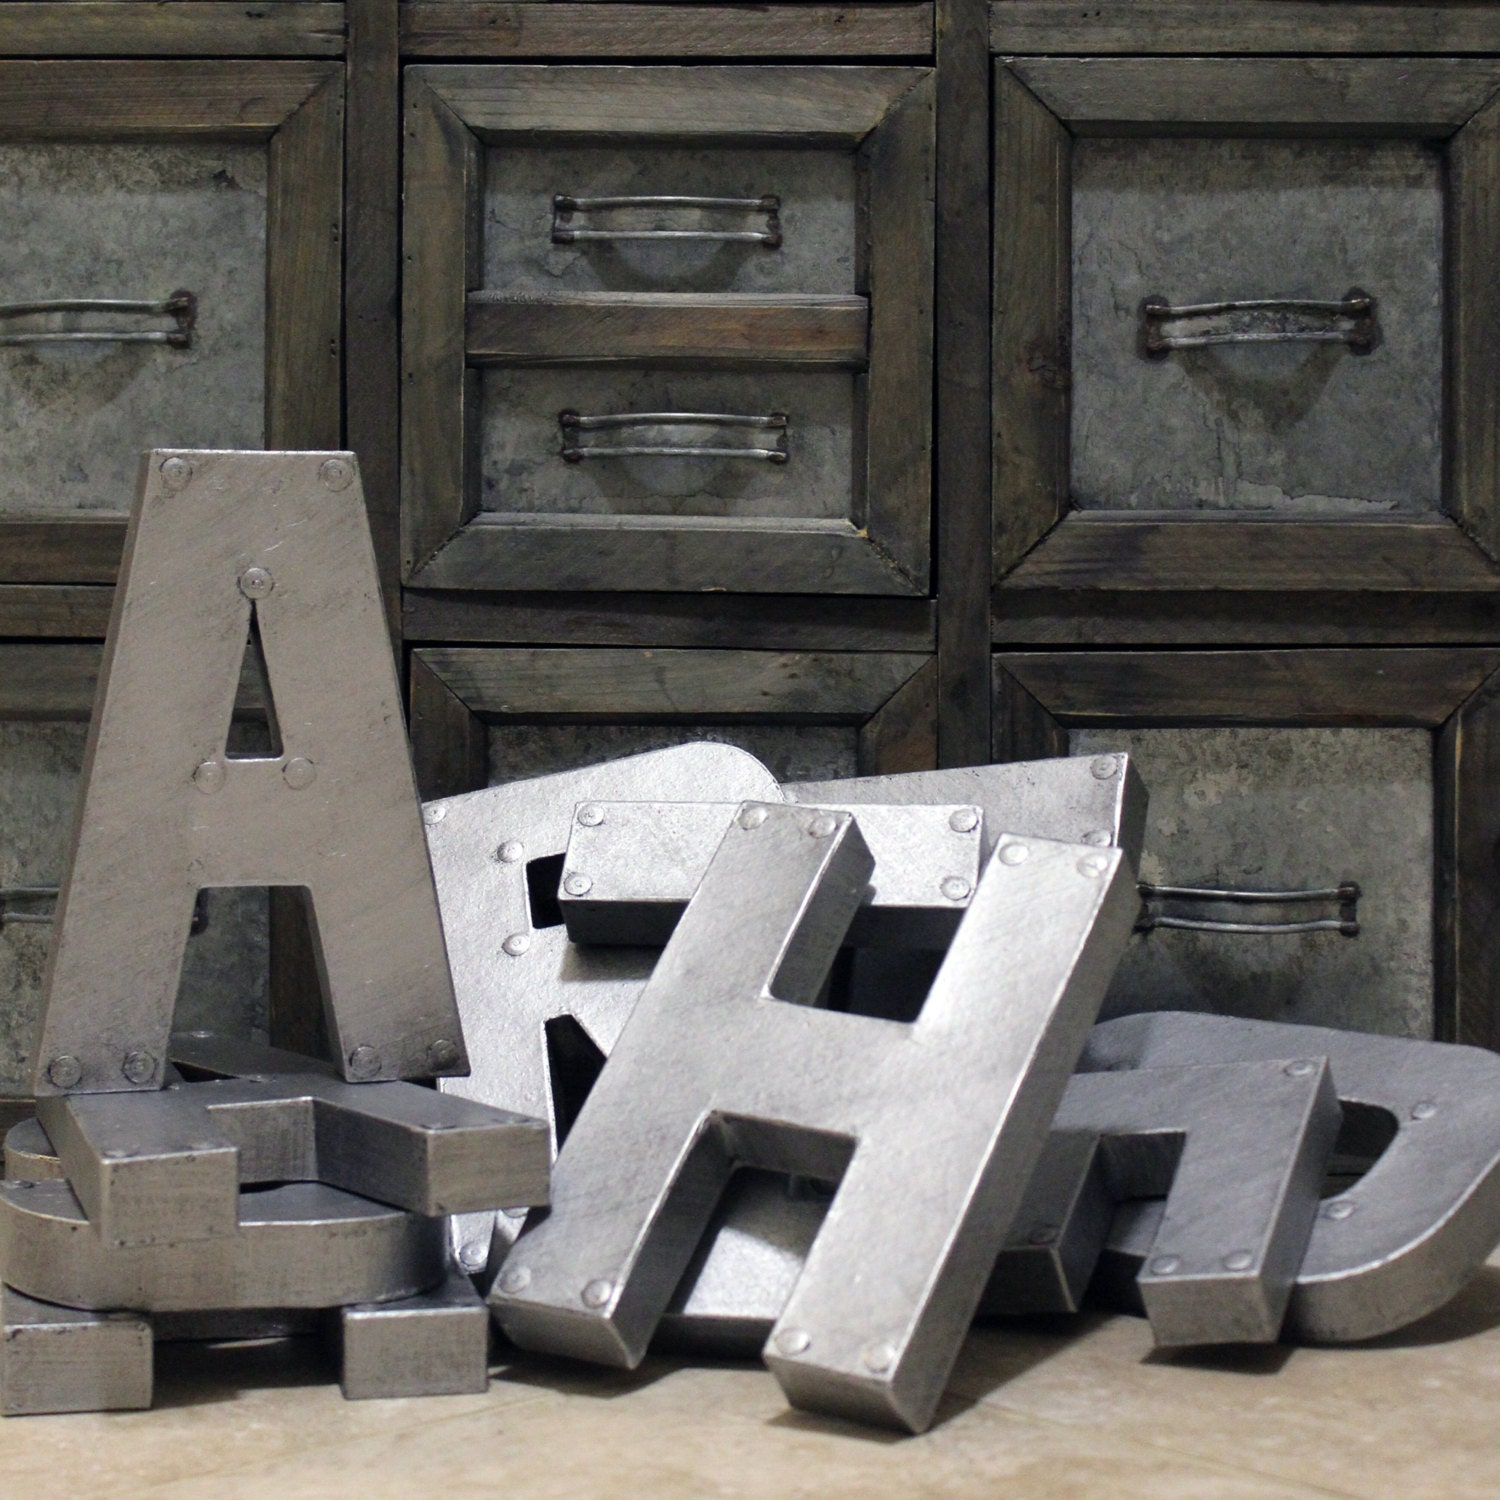 about home metal designs pinterest ideas on decor letters best large for wall interior